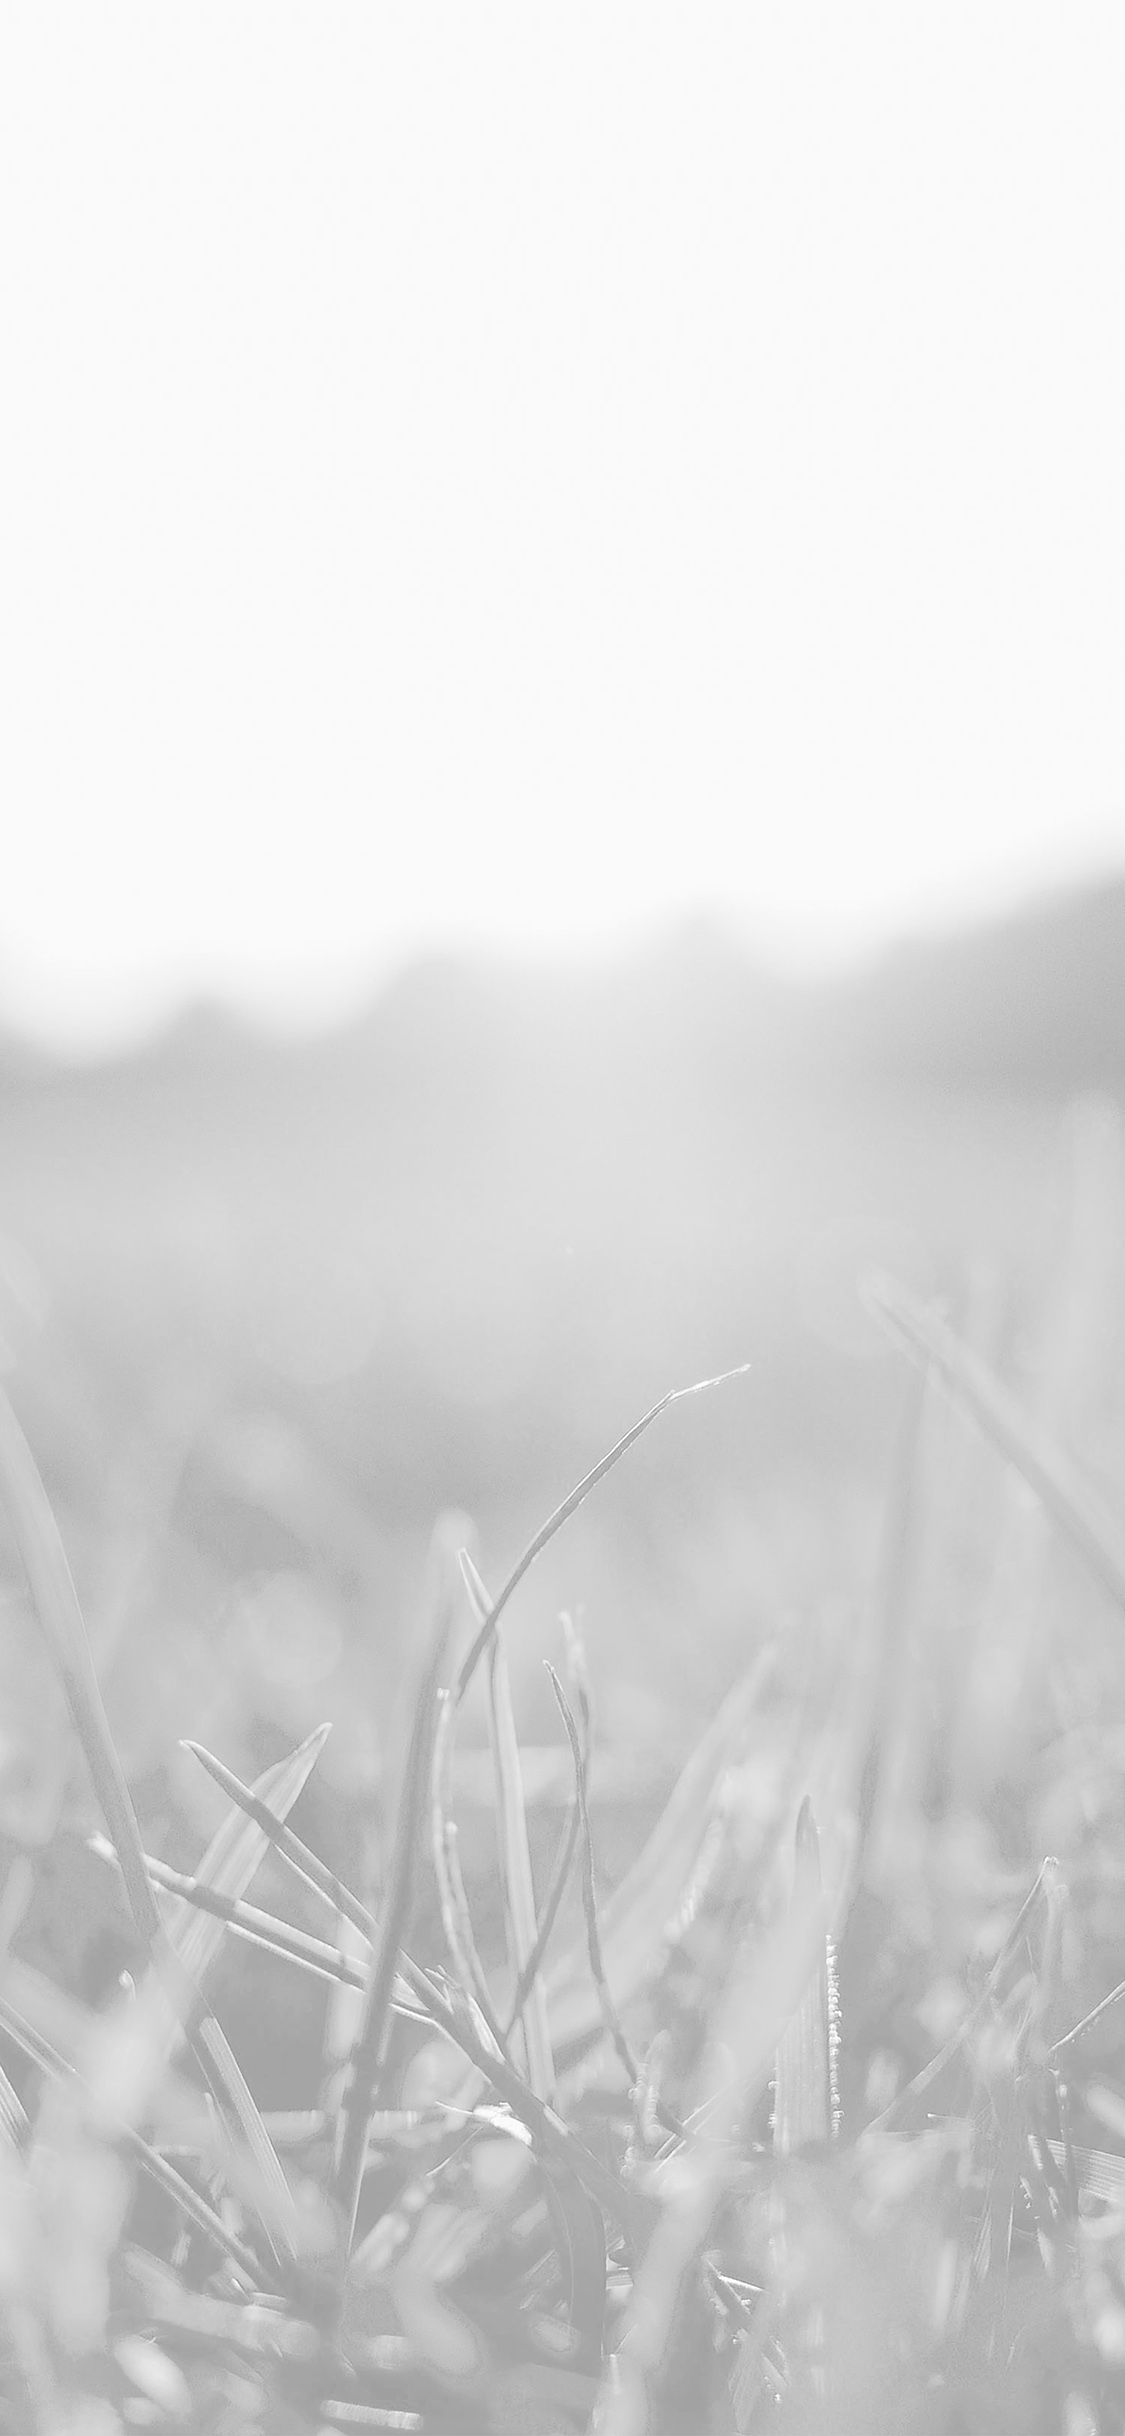 Mw49 Grass White Bokeh Light Summer Nature Wallpaper